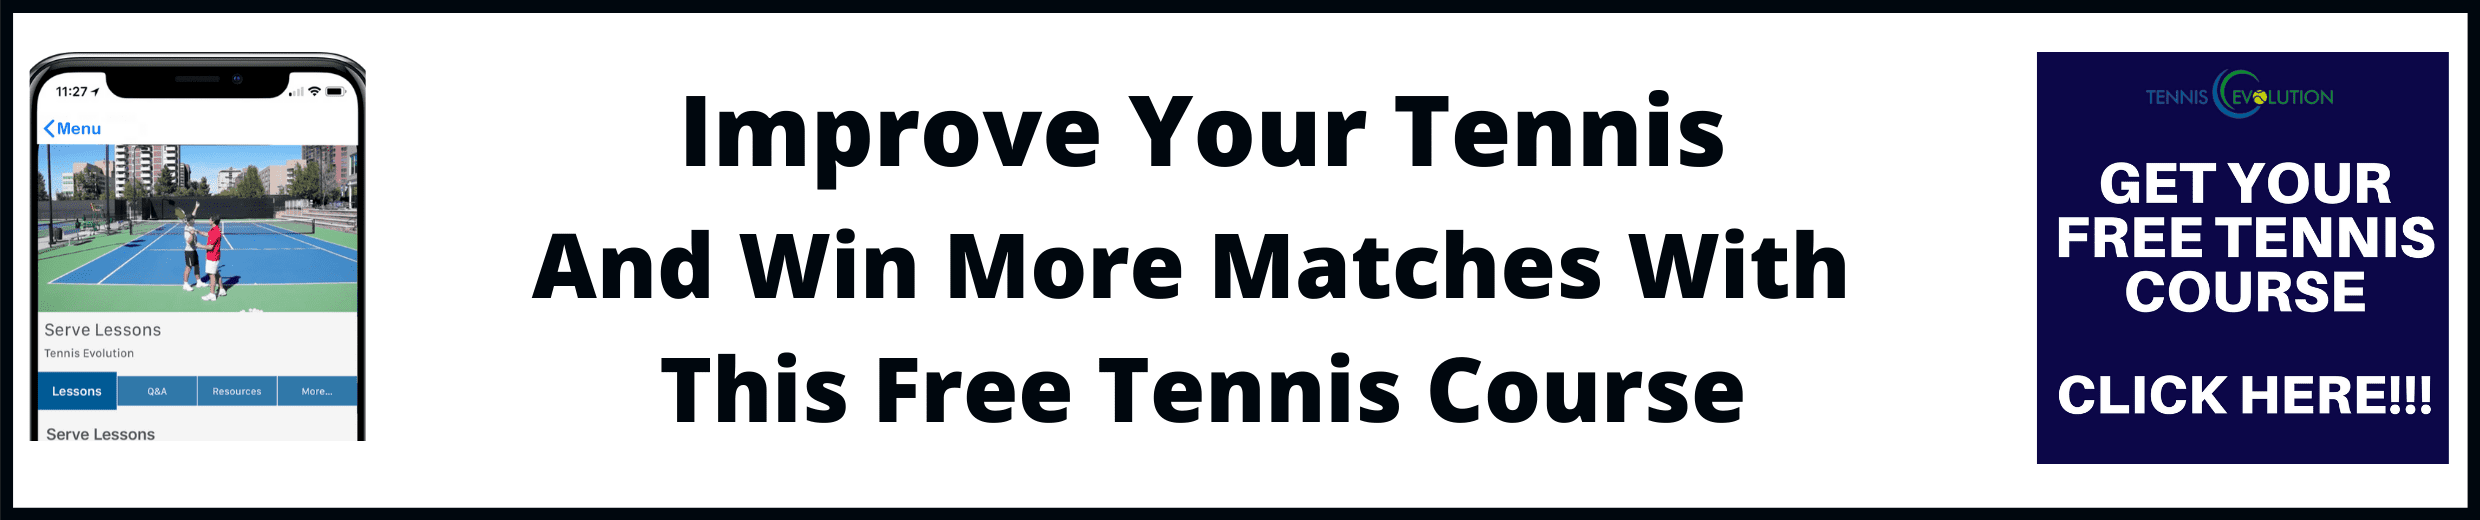 Free Tennis Course